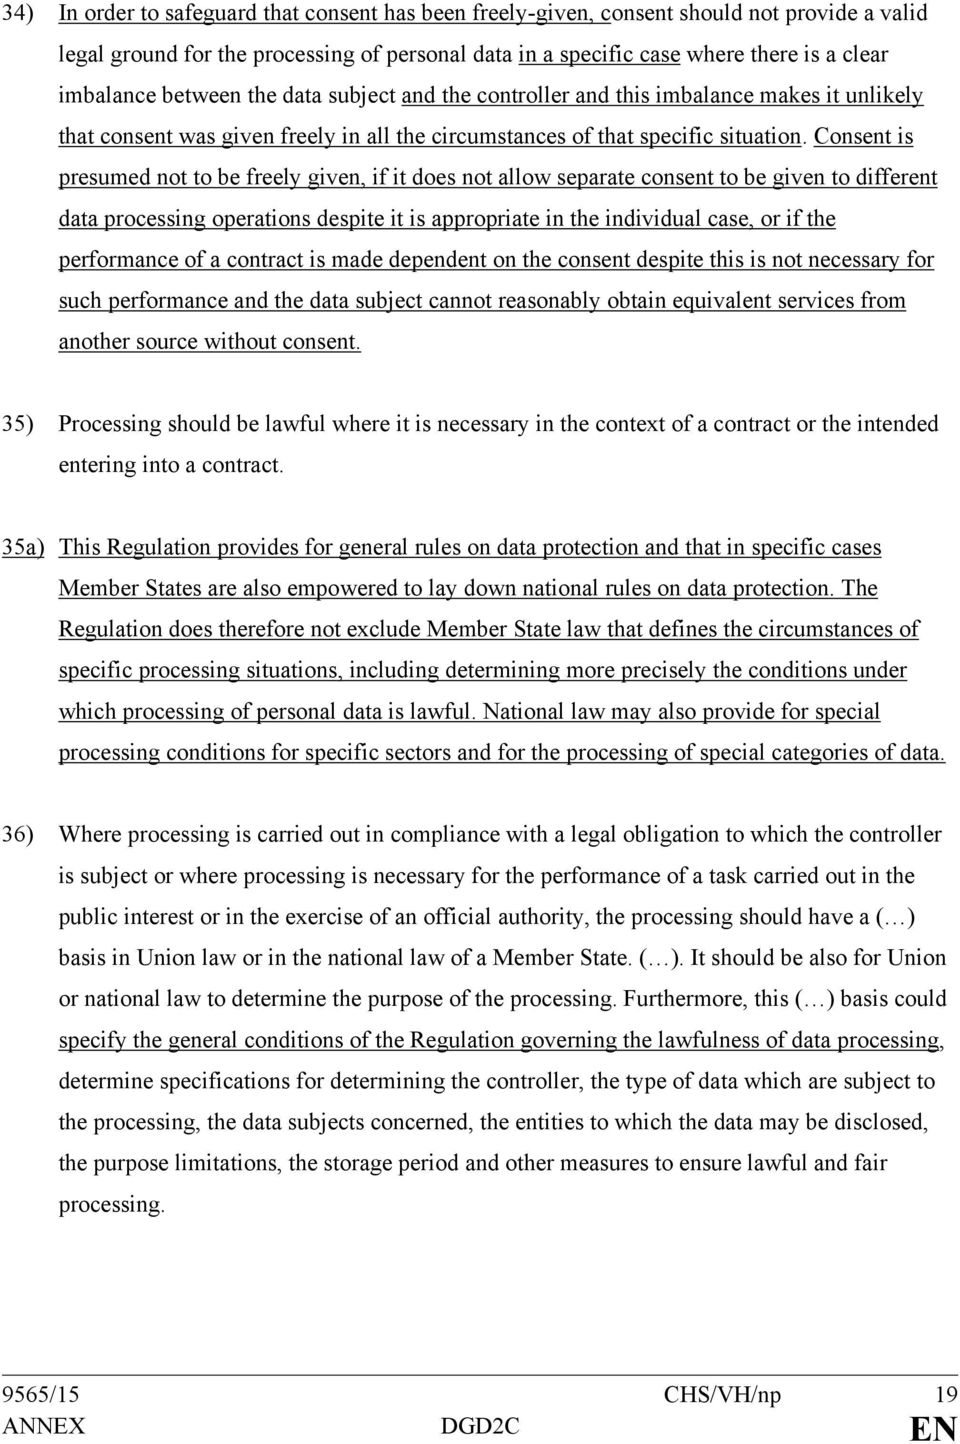 Consent is presumed not to be freely given, if it does not allow separate consent to be given to different data processing operations despite it is appropriate in the individual case, or if the